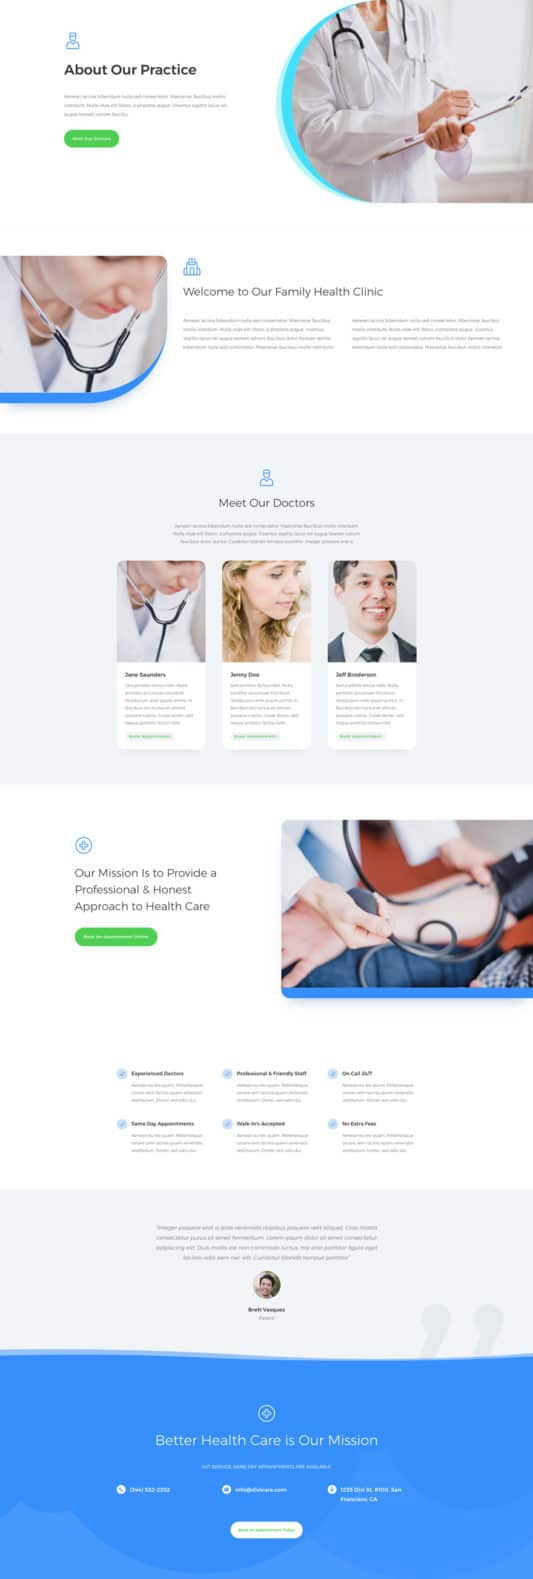 Doctor's Office Web Design 1